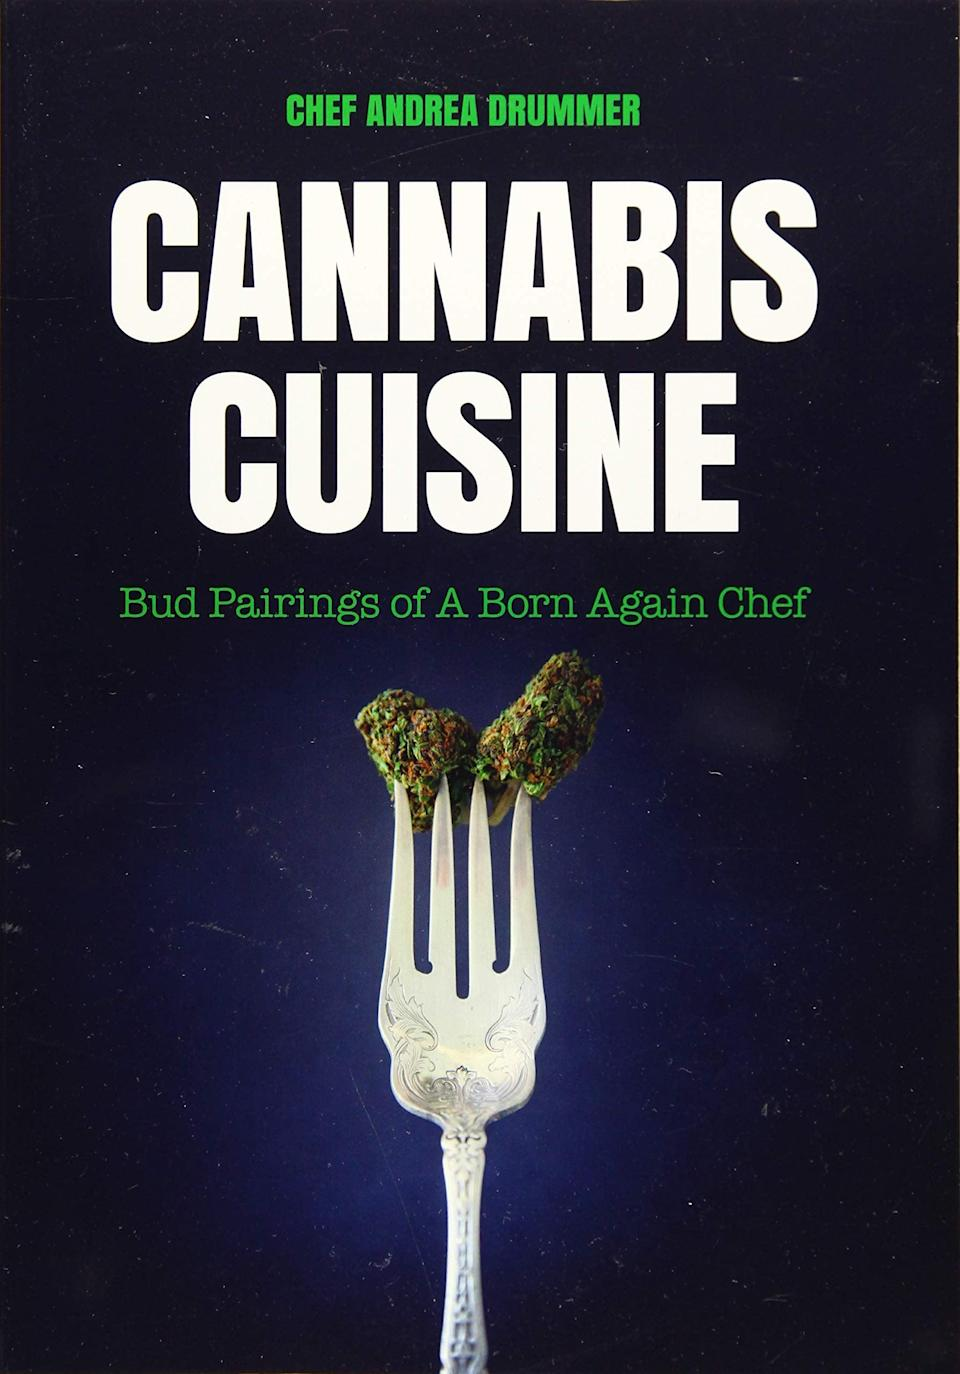 <p>If you want to go beyond the recipes and truly learn the art of marijuana, the <span>Cannabis Cuisine: Bud Pairings of A Born Again Chef by Andrea Drummer</span> ($15) is a must-have. This cookbook will teach you how to pair certain strains and buds with certain ingredients and foods, create unique butters and oils, and how to properly dose to your liking. Each recipe will elevate your meals making you feel like a master chef.</p>